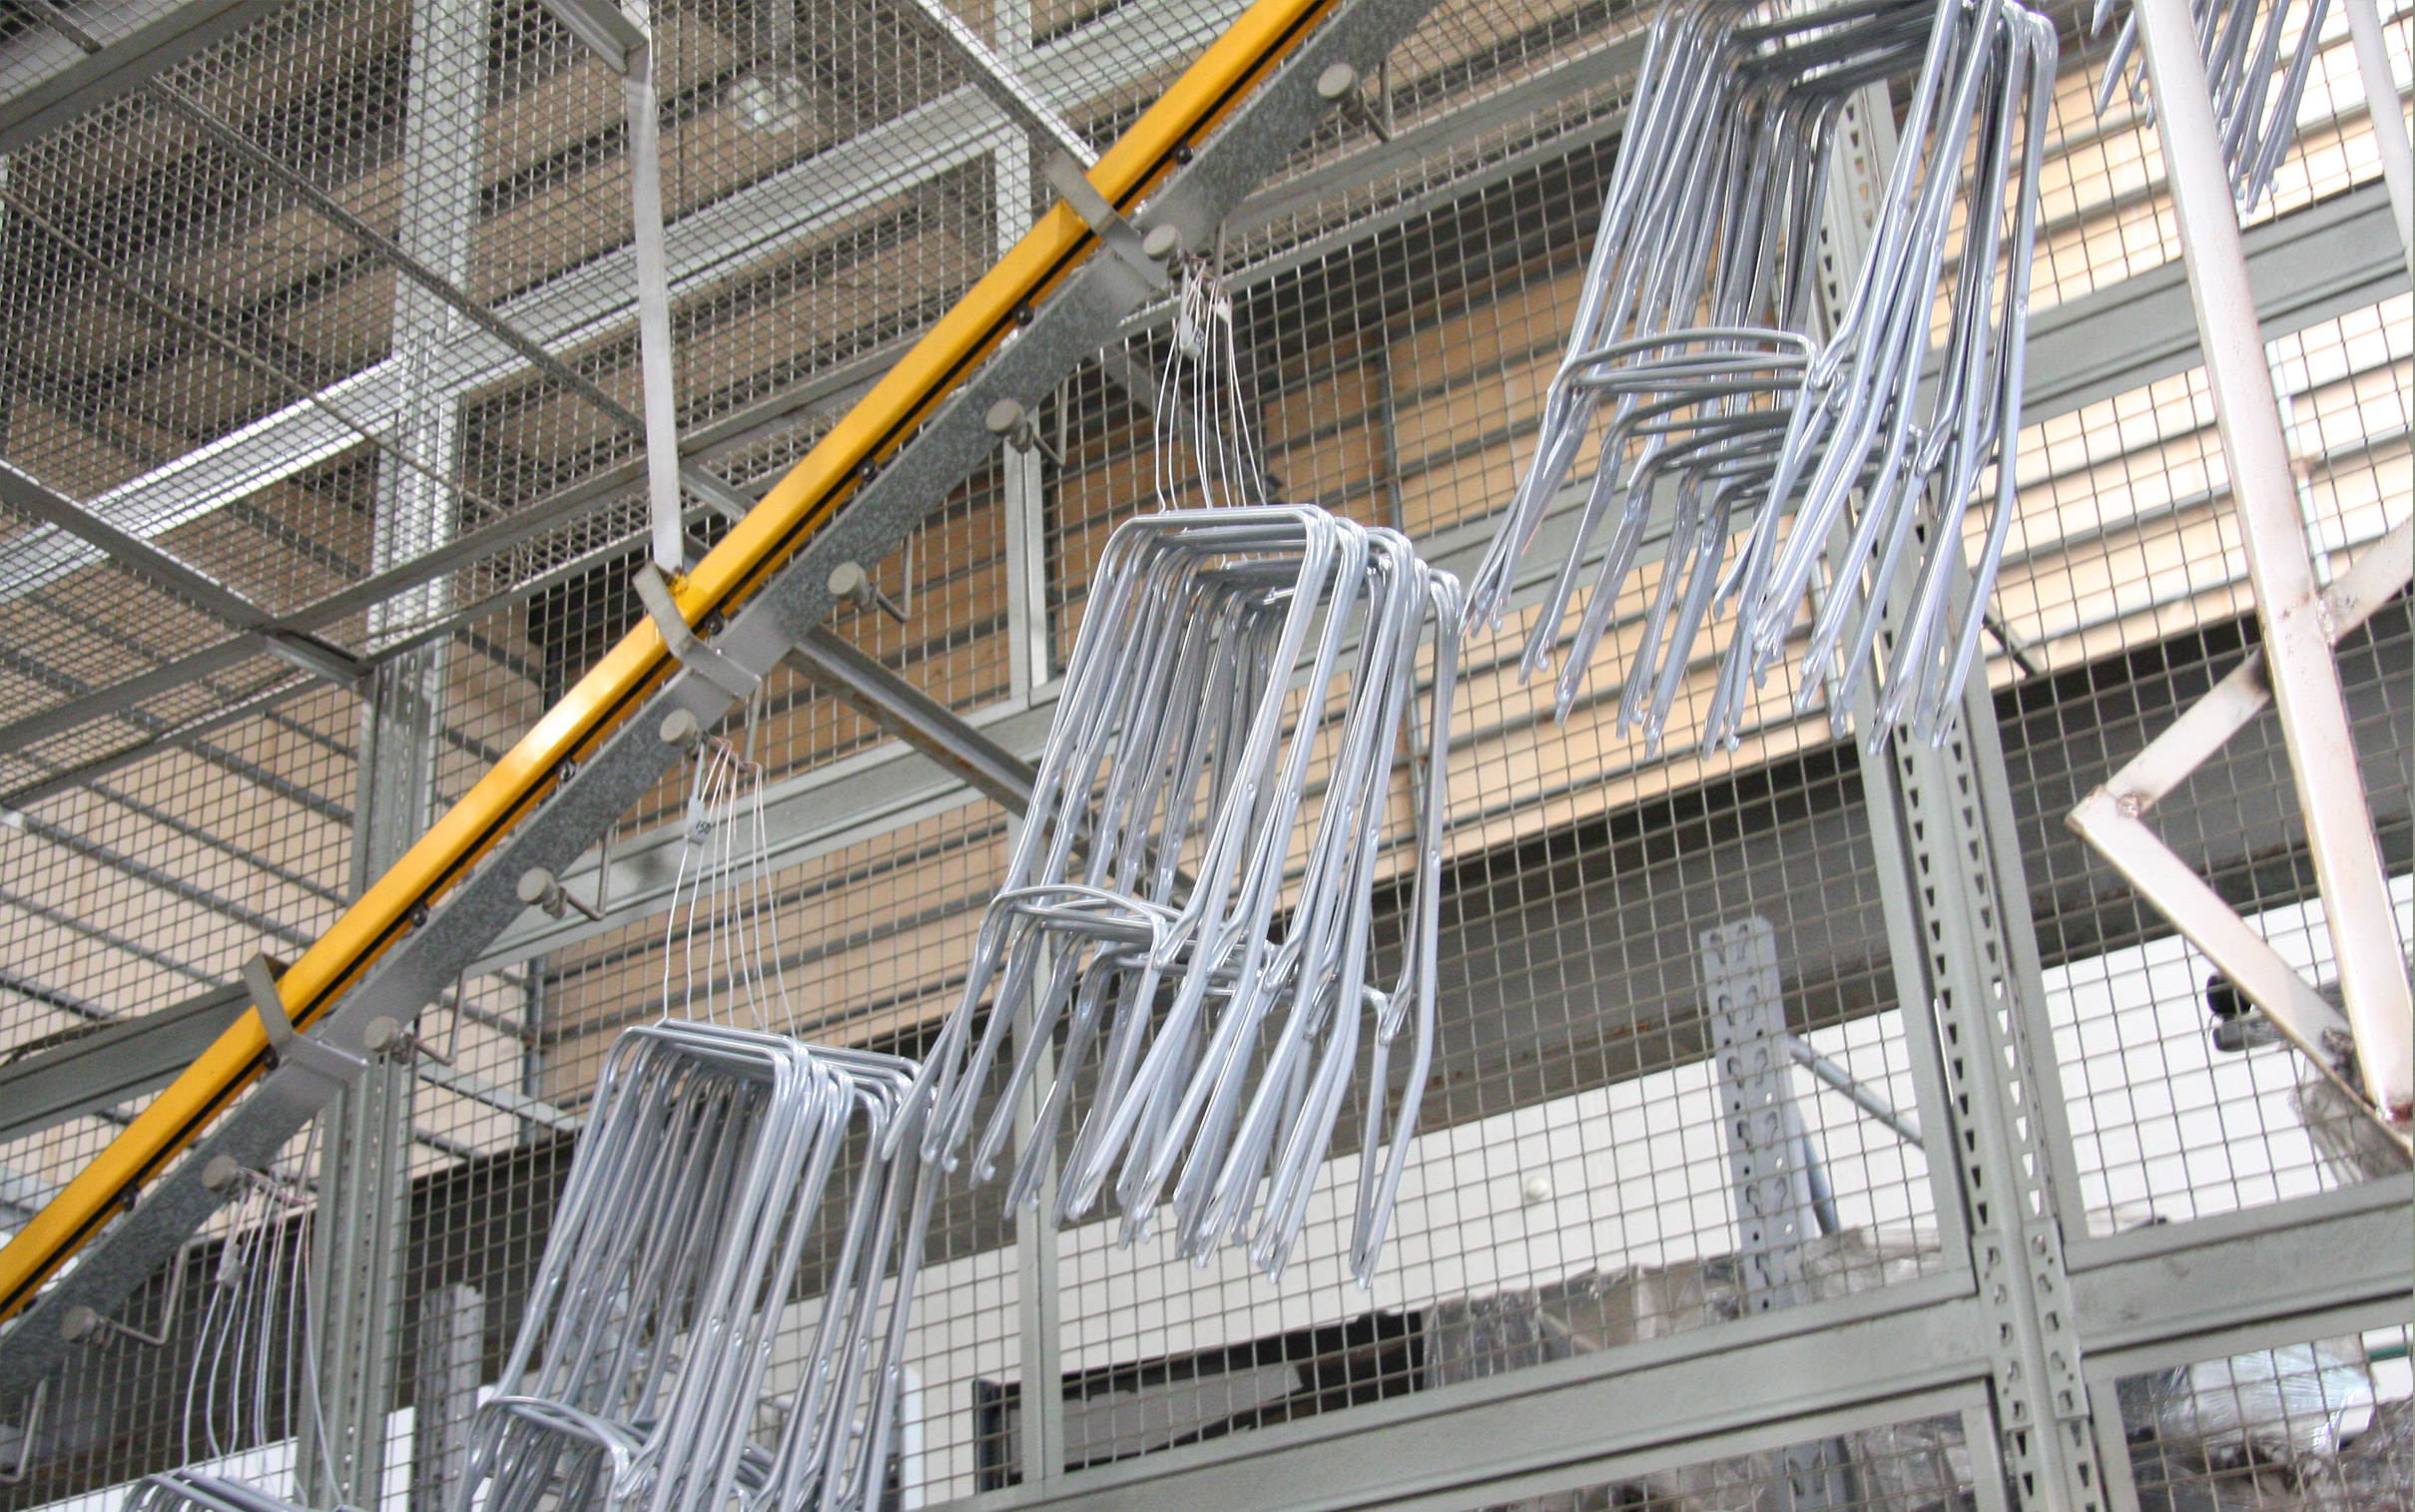 Sky Storage - With our sky storage system, parts can remain untouched and unharmed before entering the assembly and packing line.